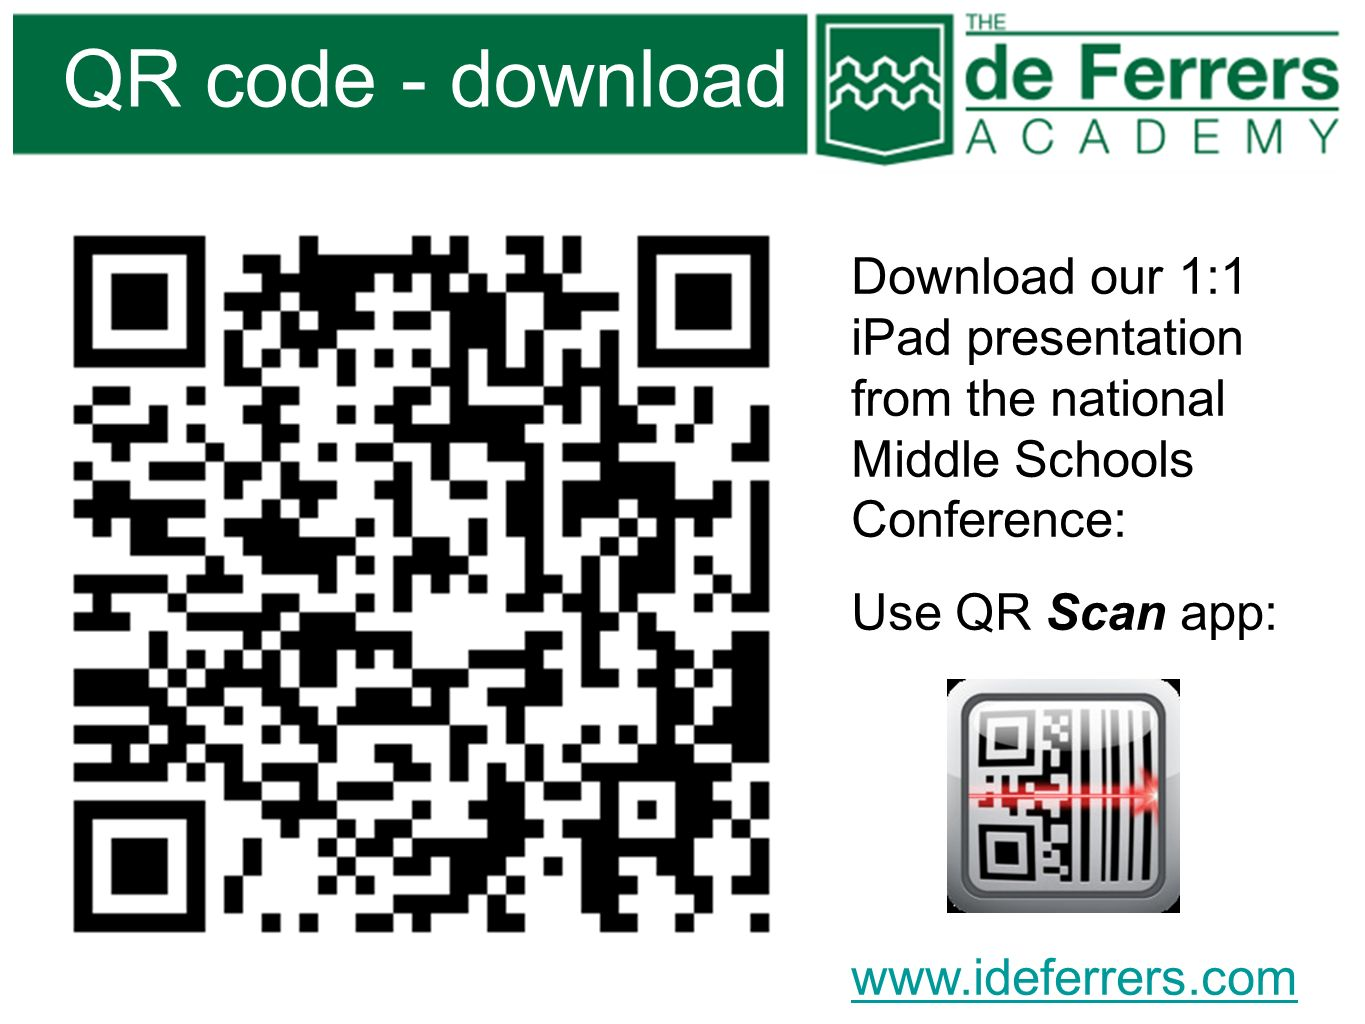 QR code - downloadDownload our 1:1 iPad presentation from the national Middle Schools Conference: Use QR Scan app: